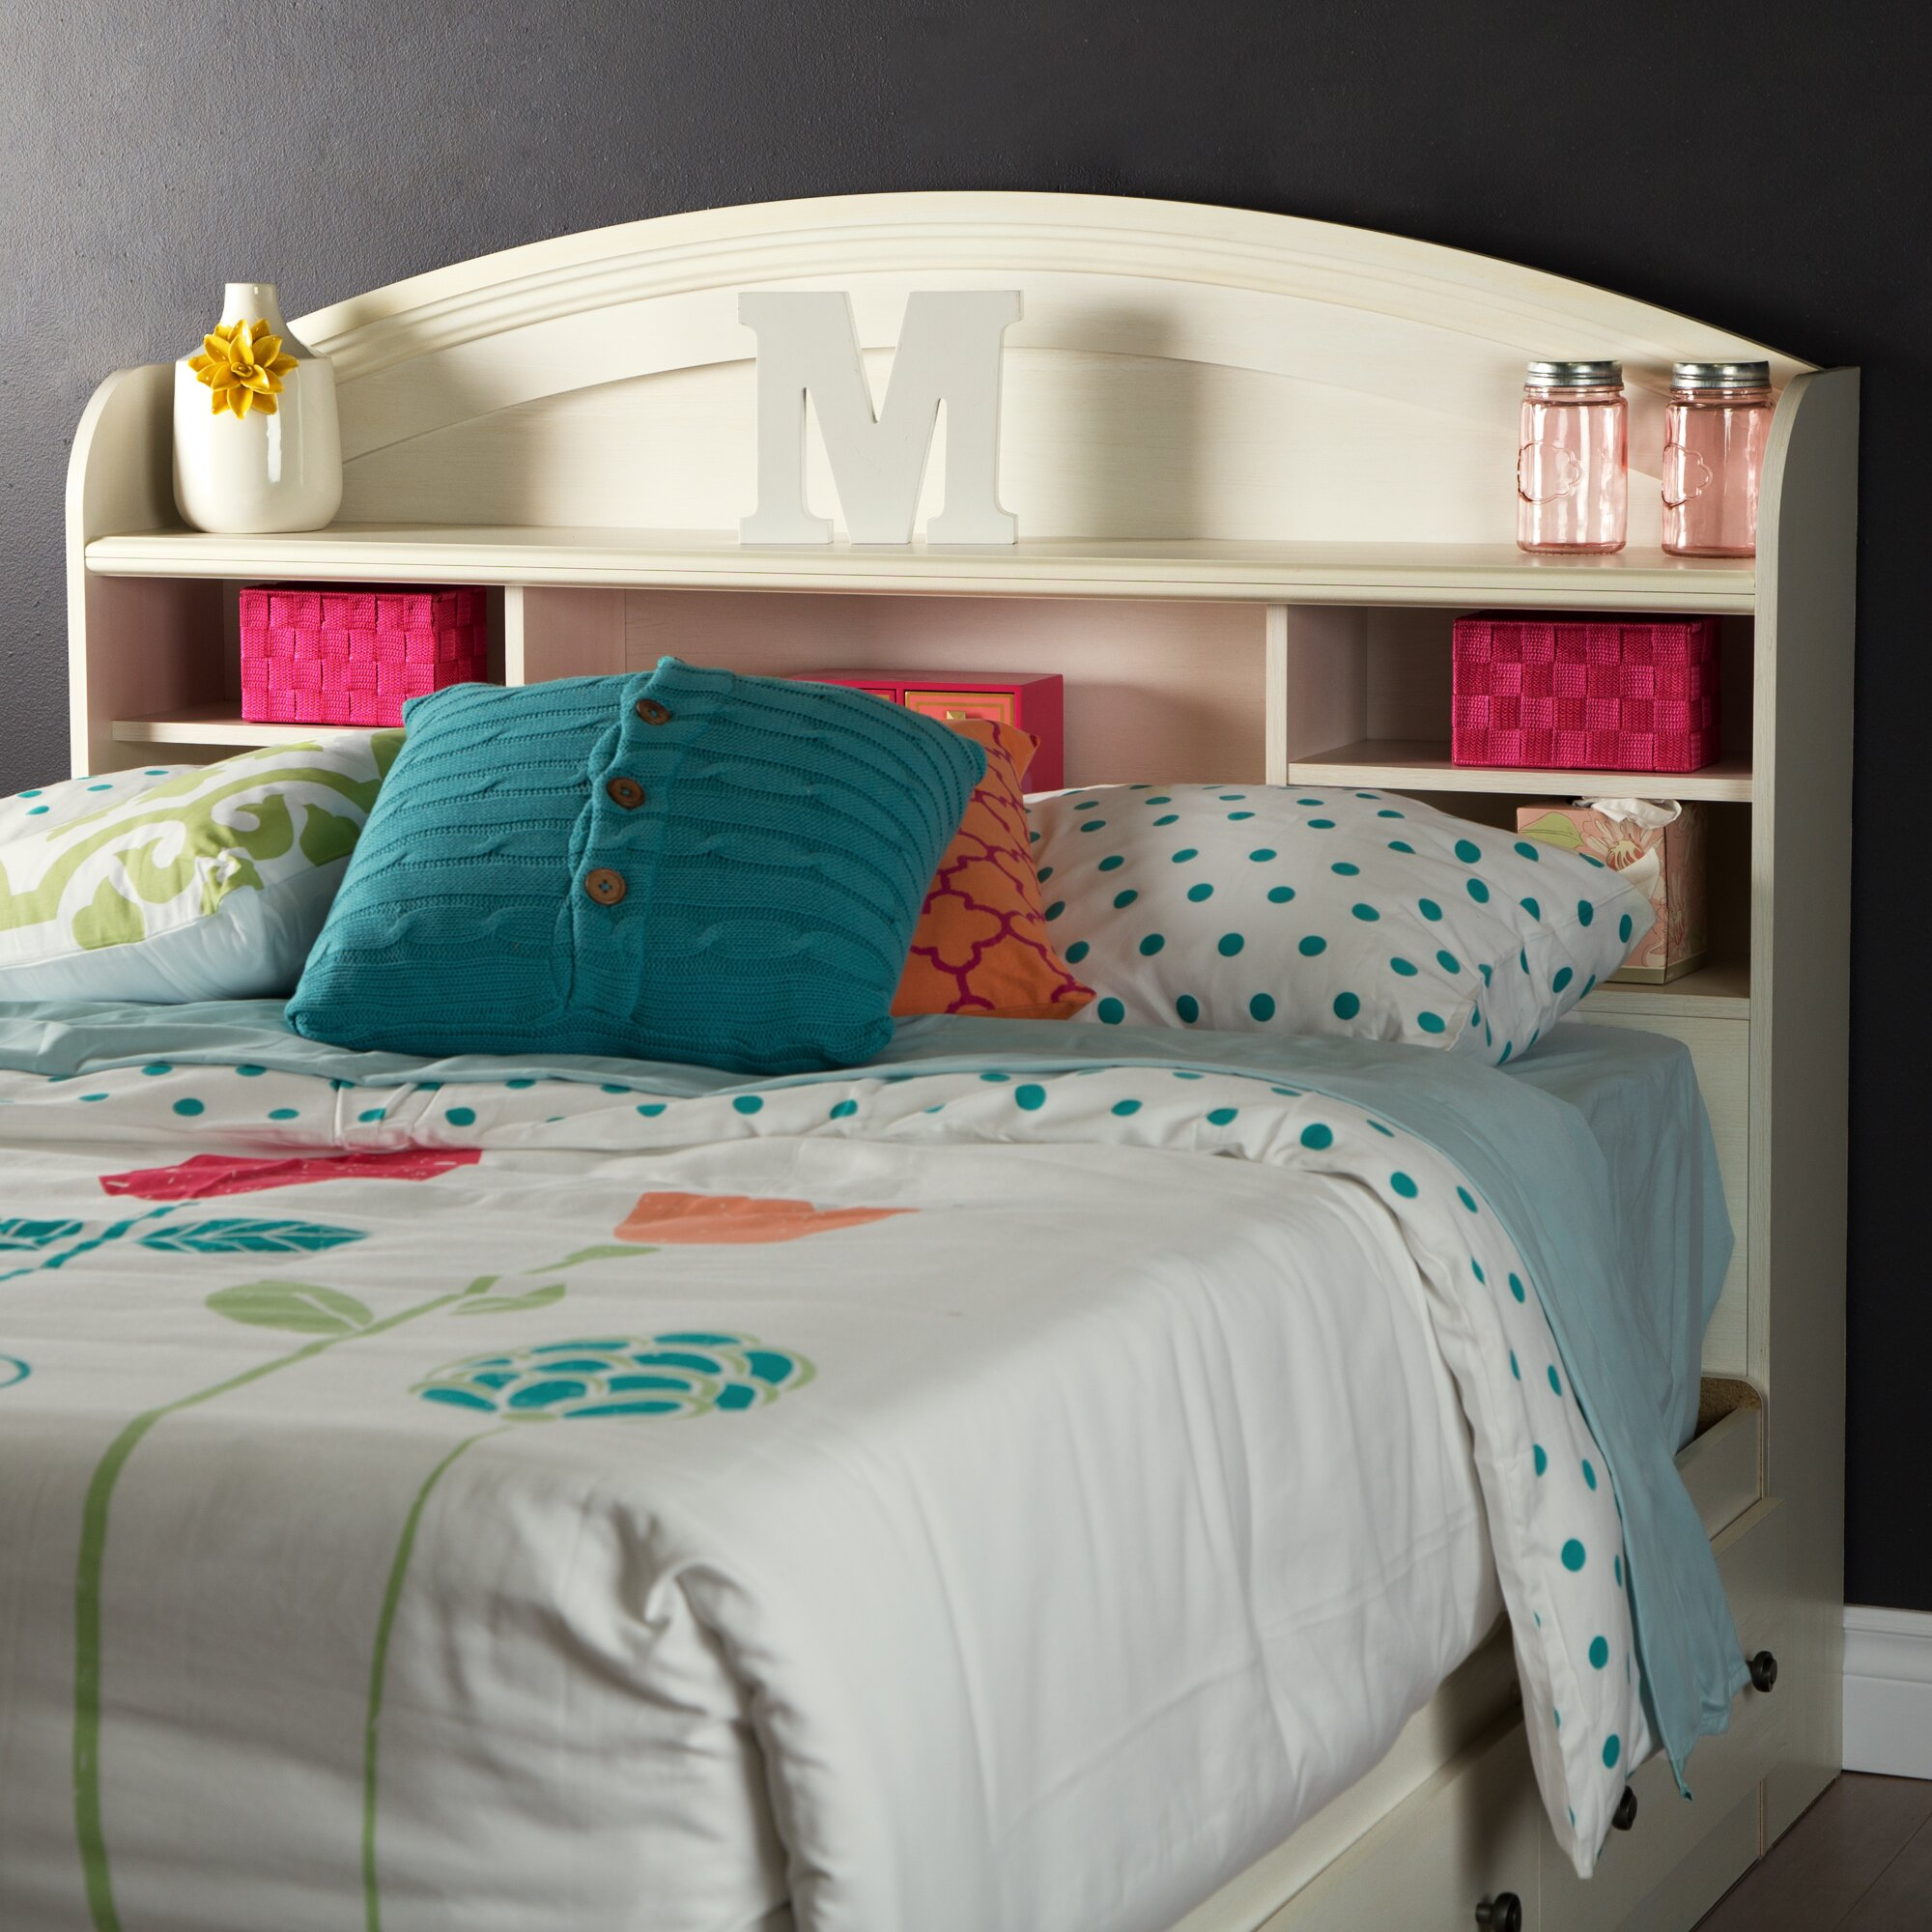 Country Bedroom Sets: South Shore Country Poetry Bedroom Set & Reviews